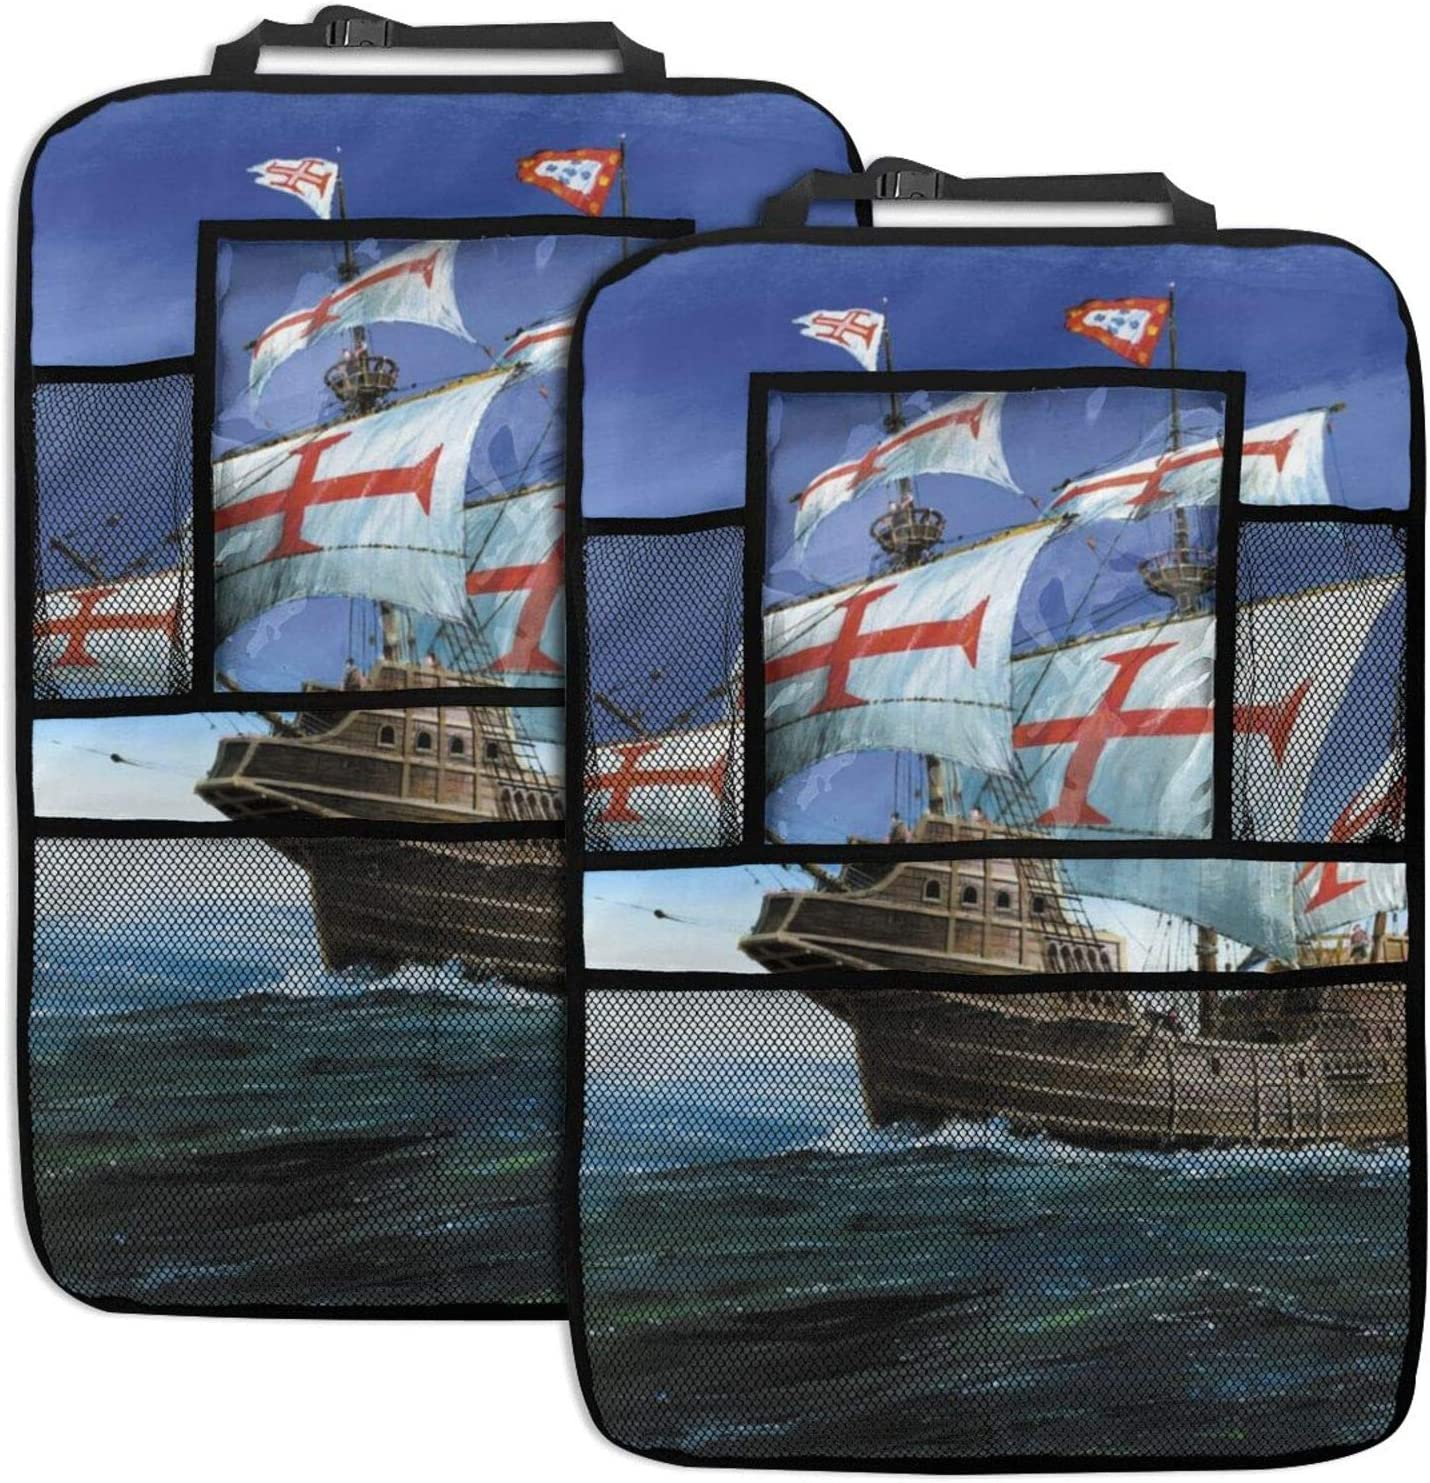 Car Backseat Organizer 2 Pack Today's only Sailing Univer Bombing free shipping Ship In Storm Waves